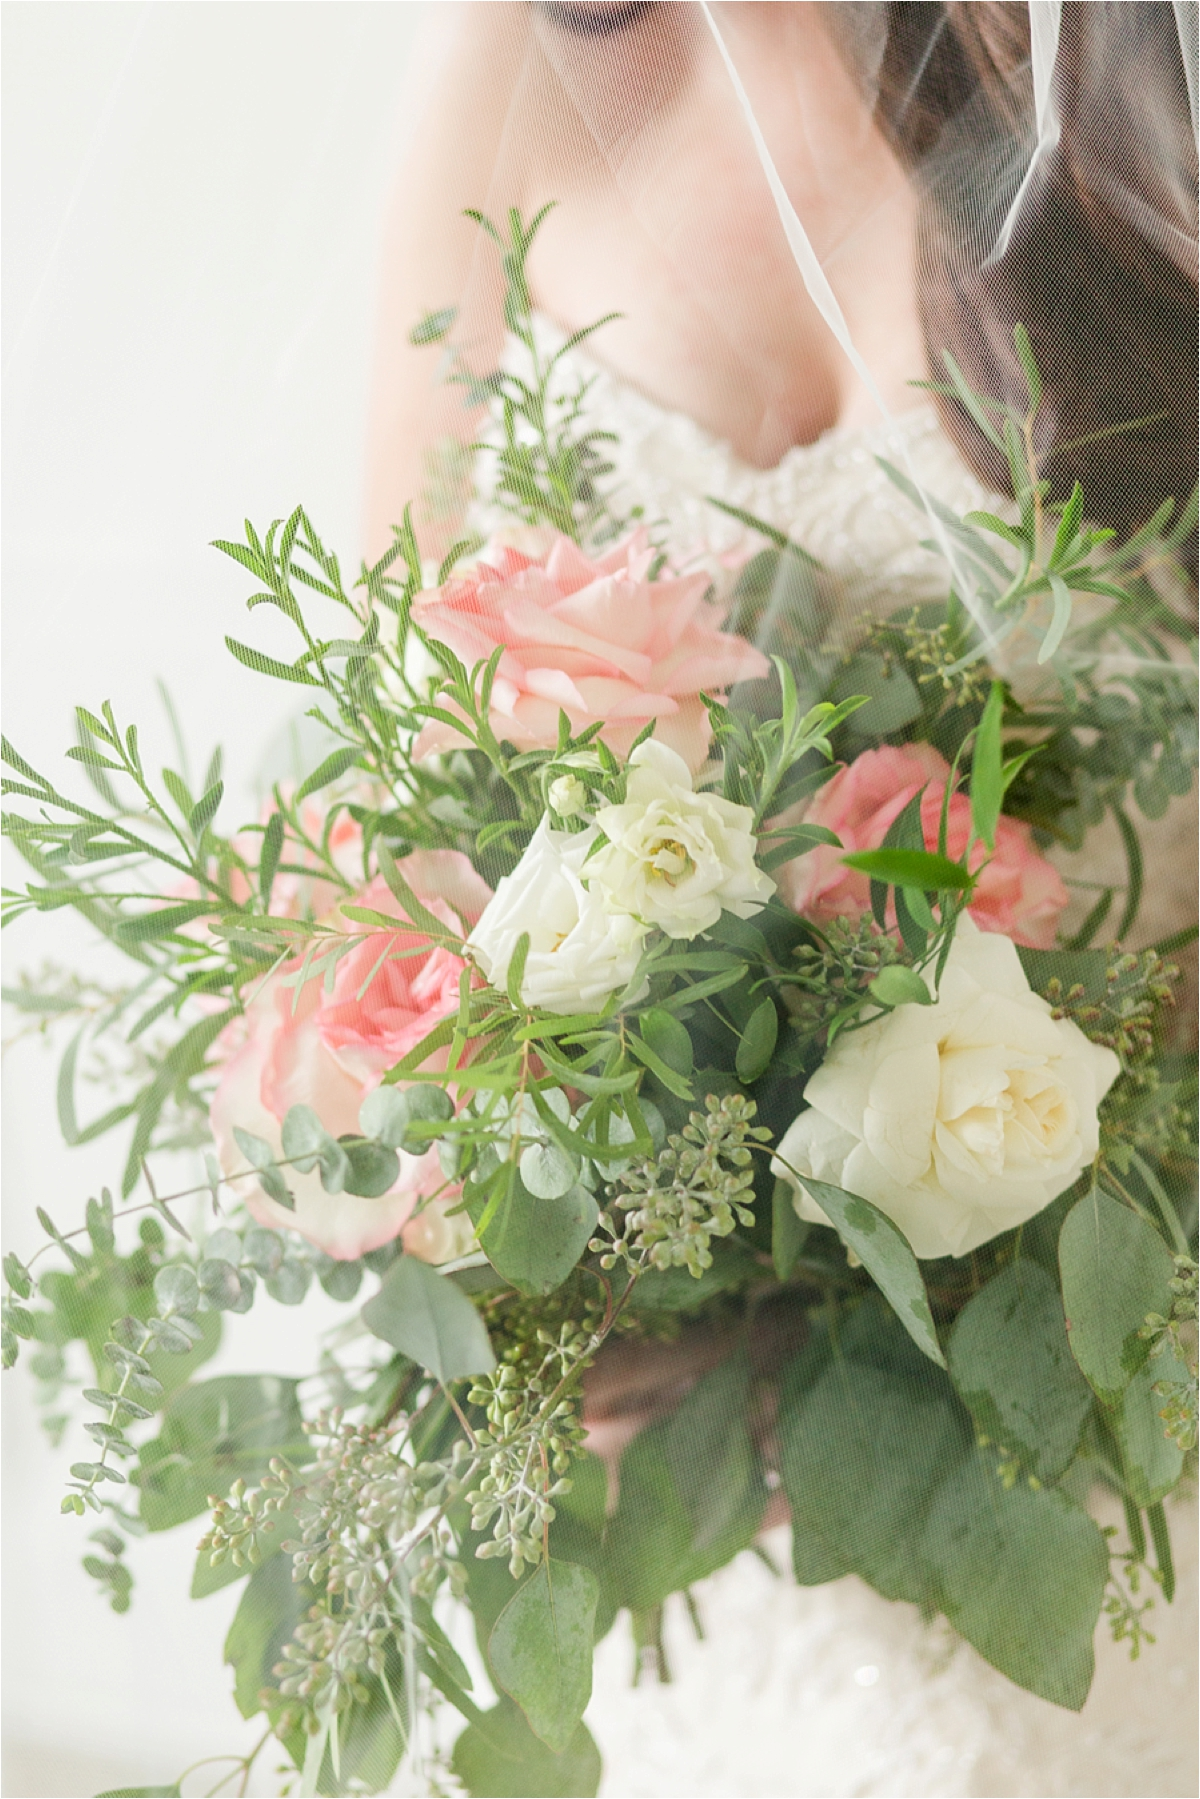 wedding-florals-bridal bouquet-blushes-roses-whimsical-Portraits-the Pillars-Mobile, Alabama-Dragonfly-Photography